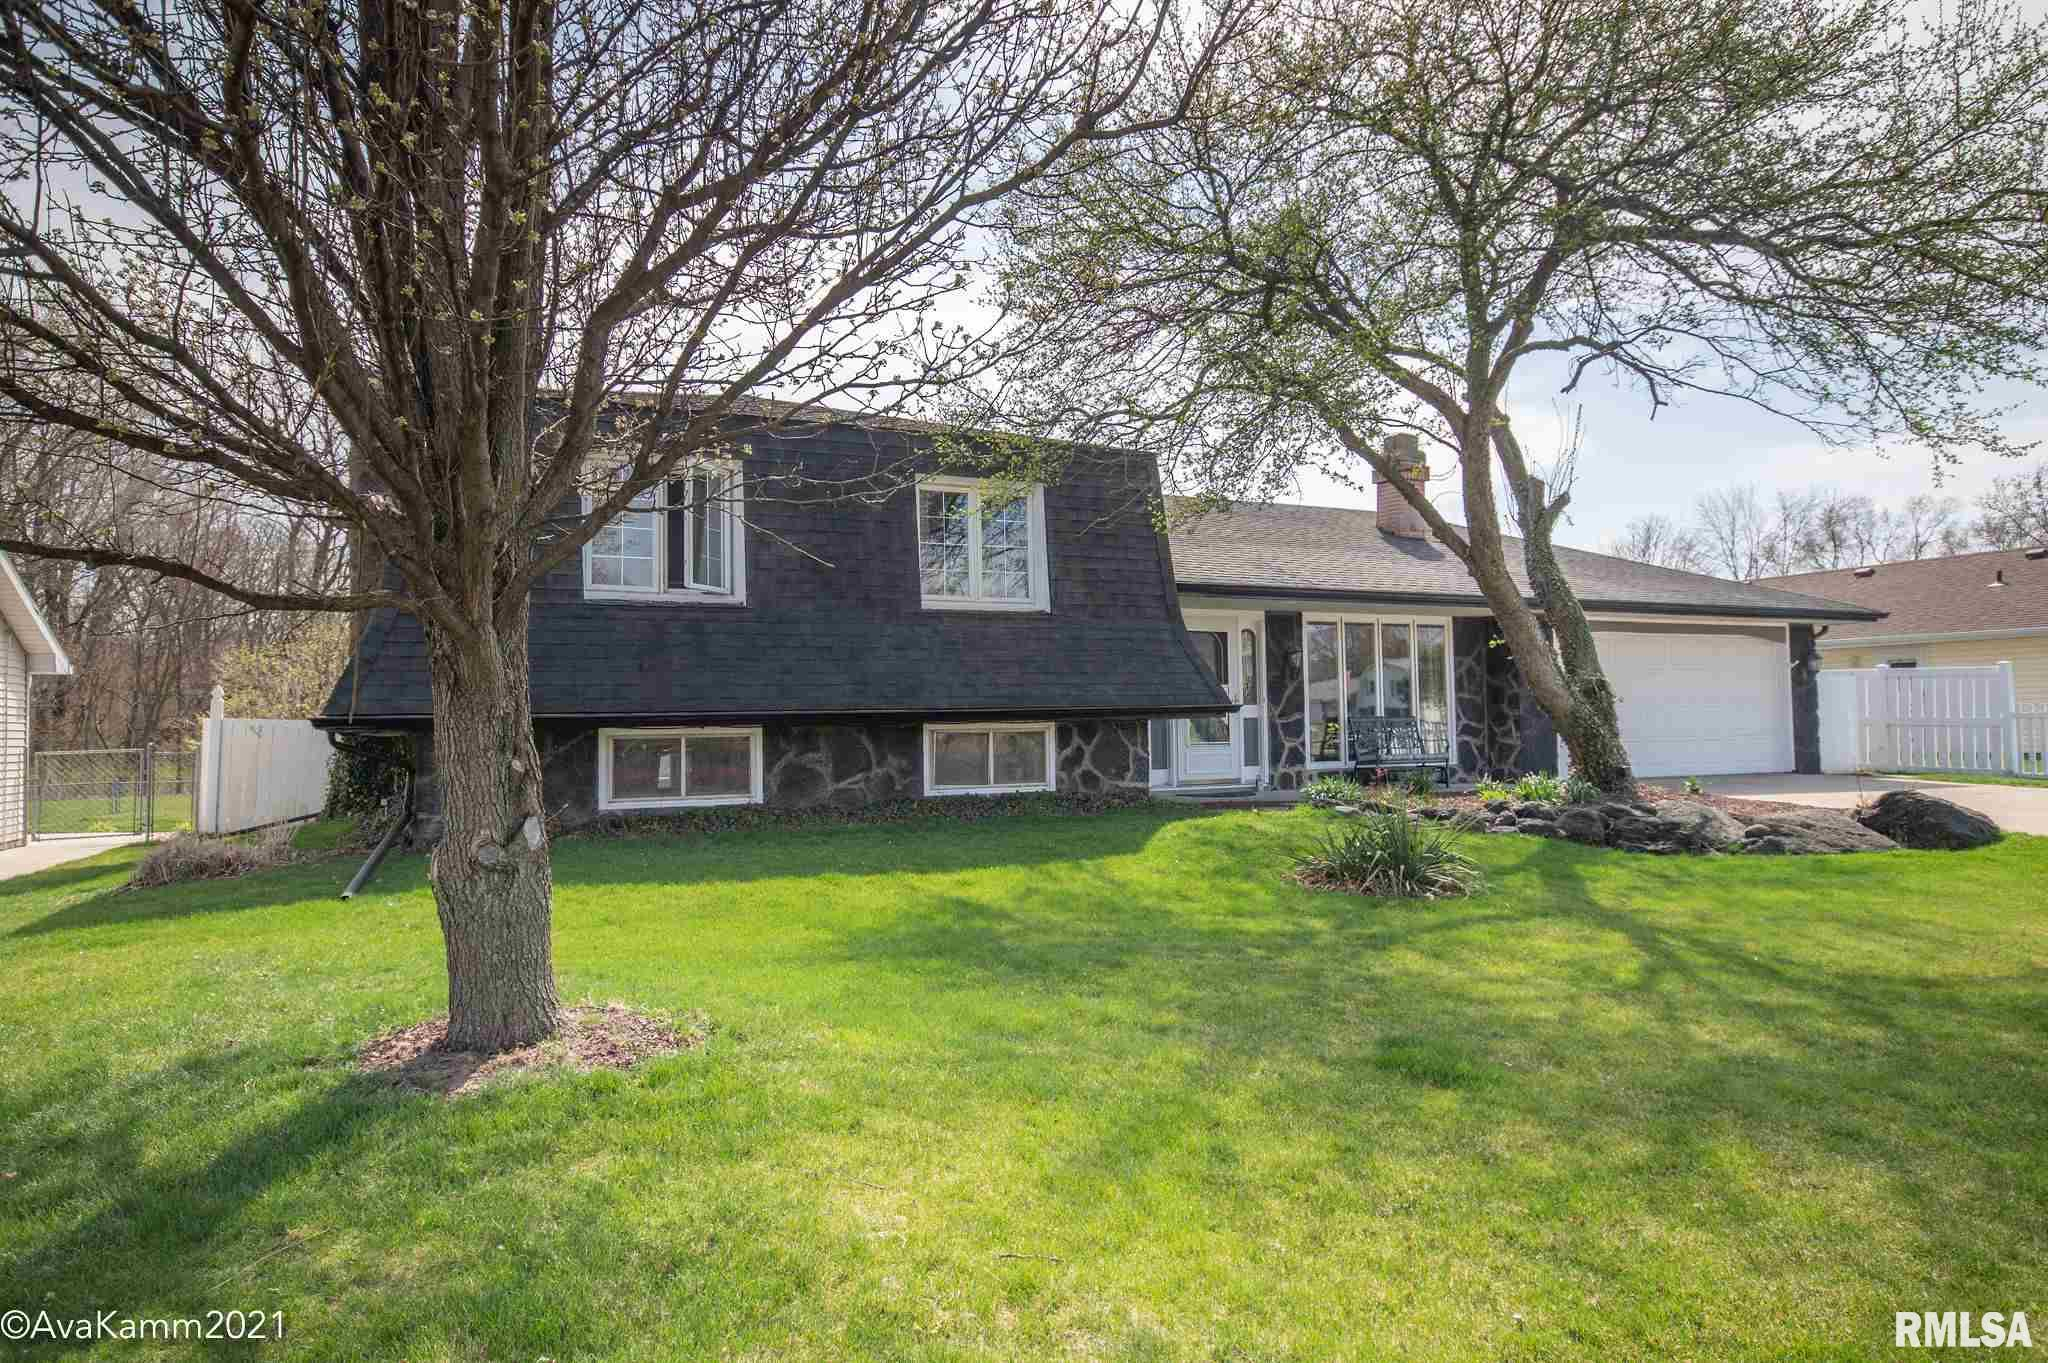 5722 W OVERLAND PASS Property Photo - Peoria, IL real estate listing